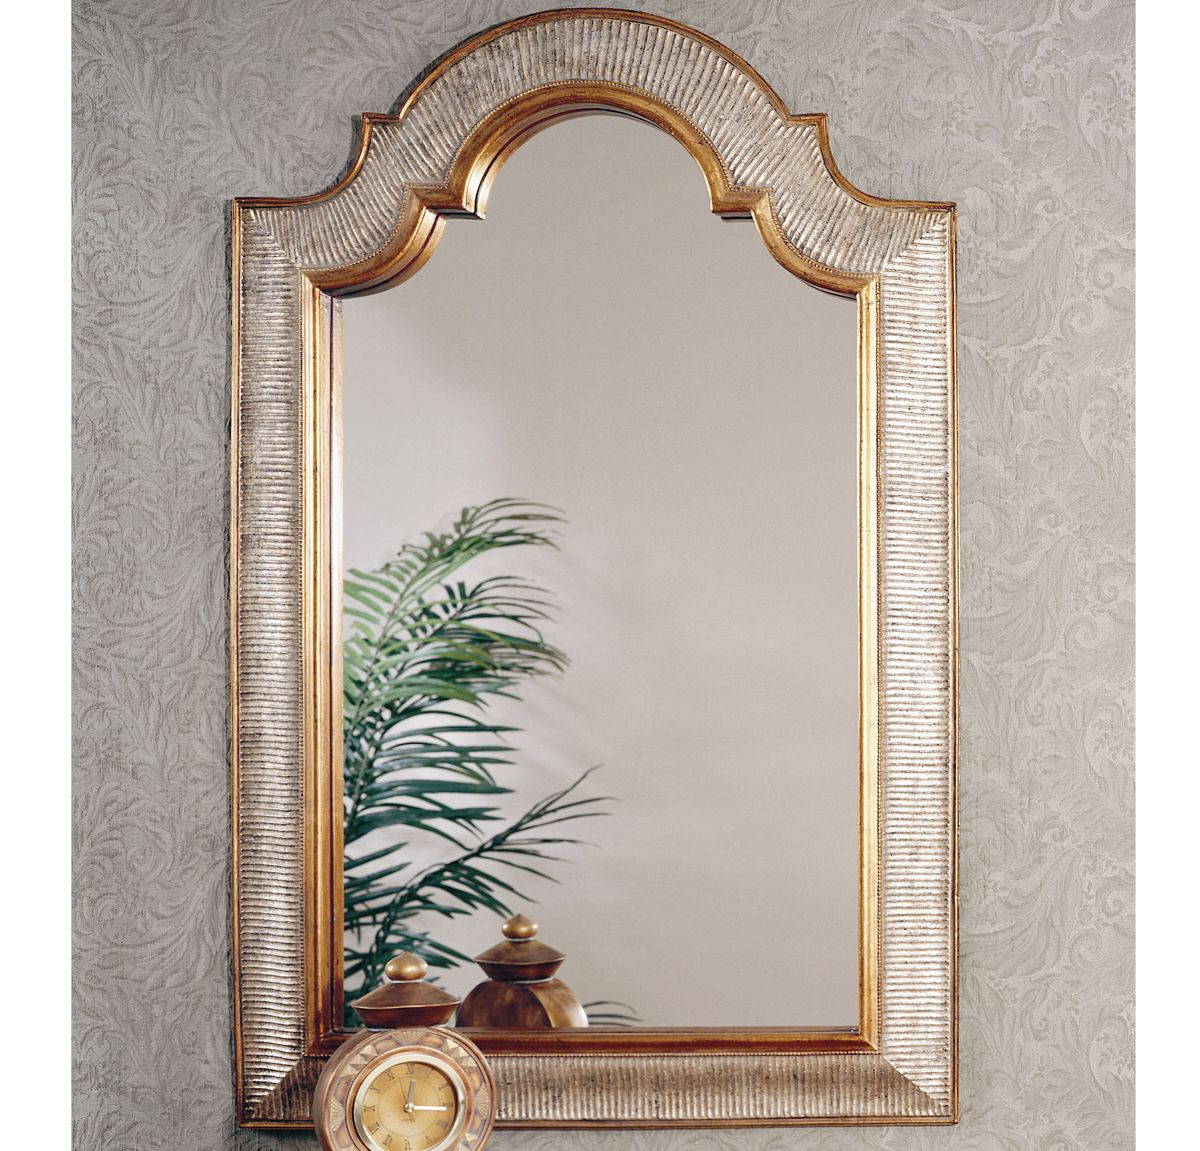 Bassett Old World Excelsior Wall Mirror in Silver and Gold Leaf